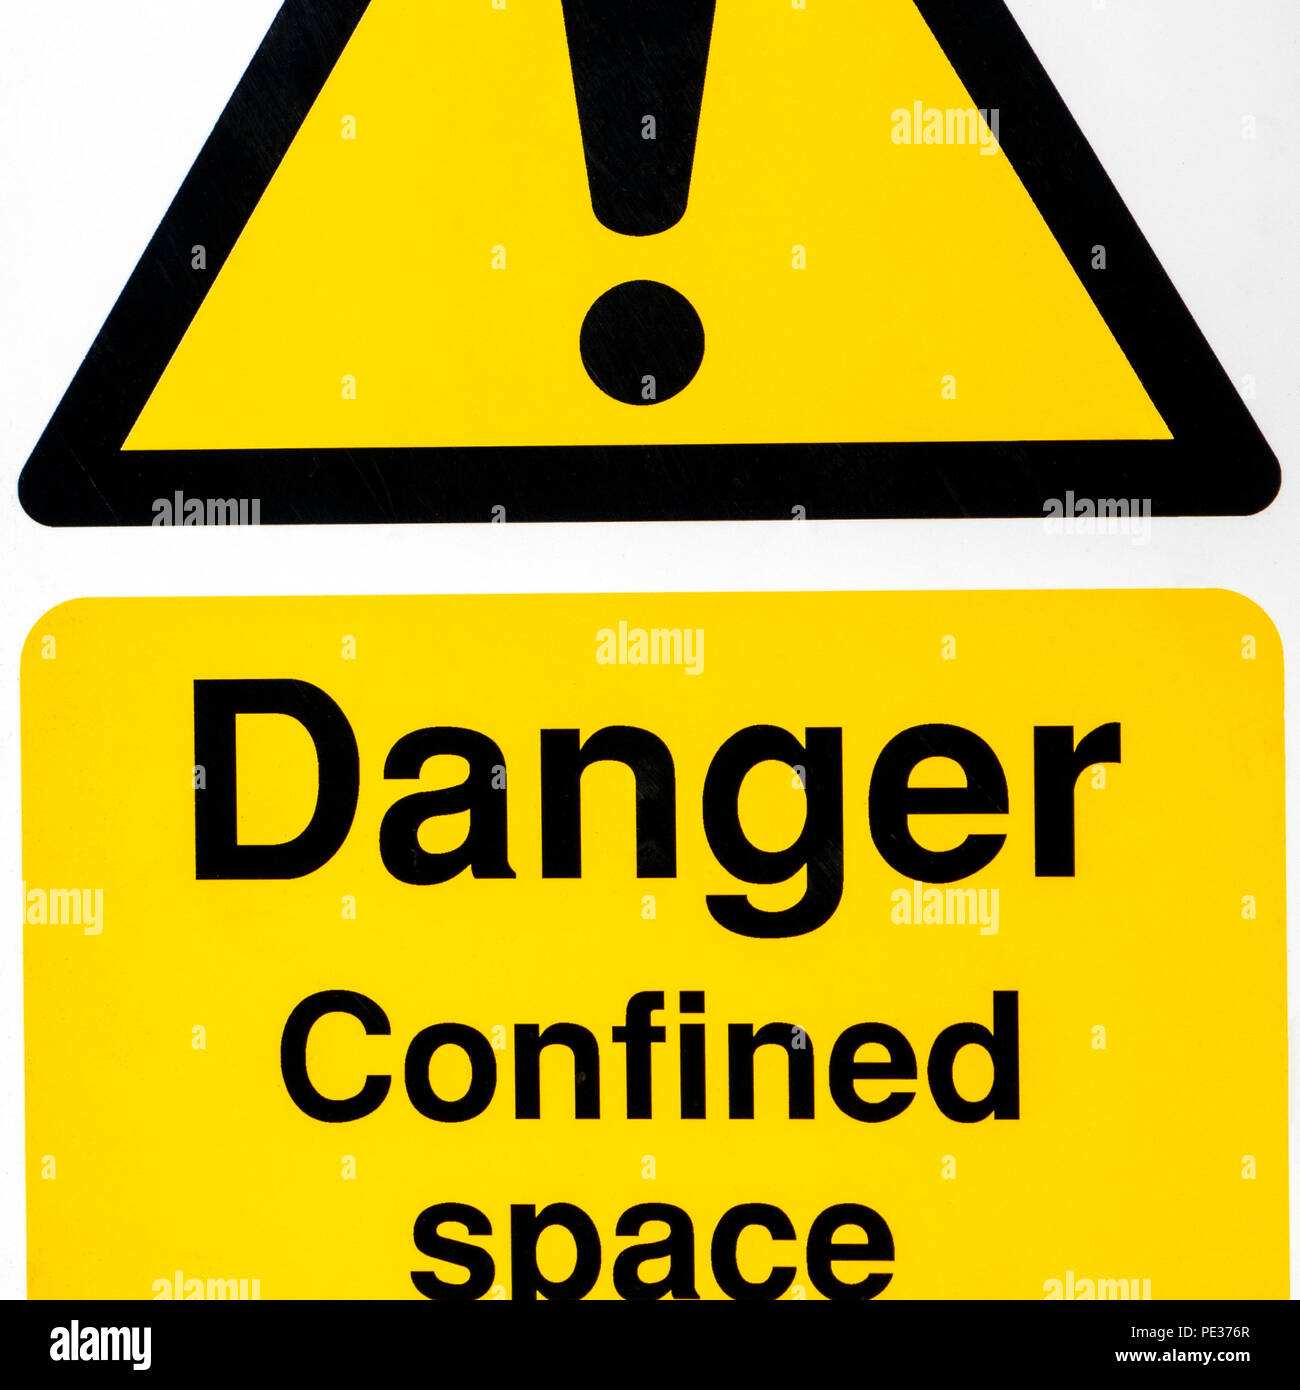 Yellow and black danger sign warning of a confined space - Stock Image